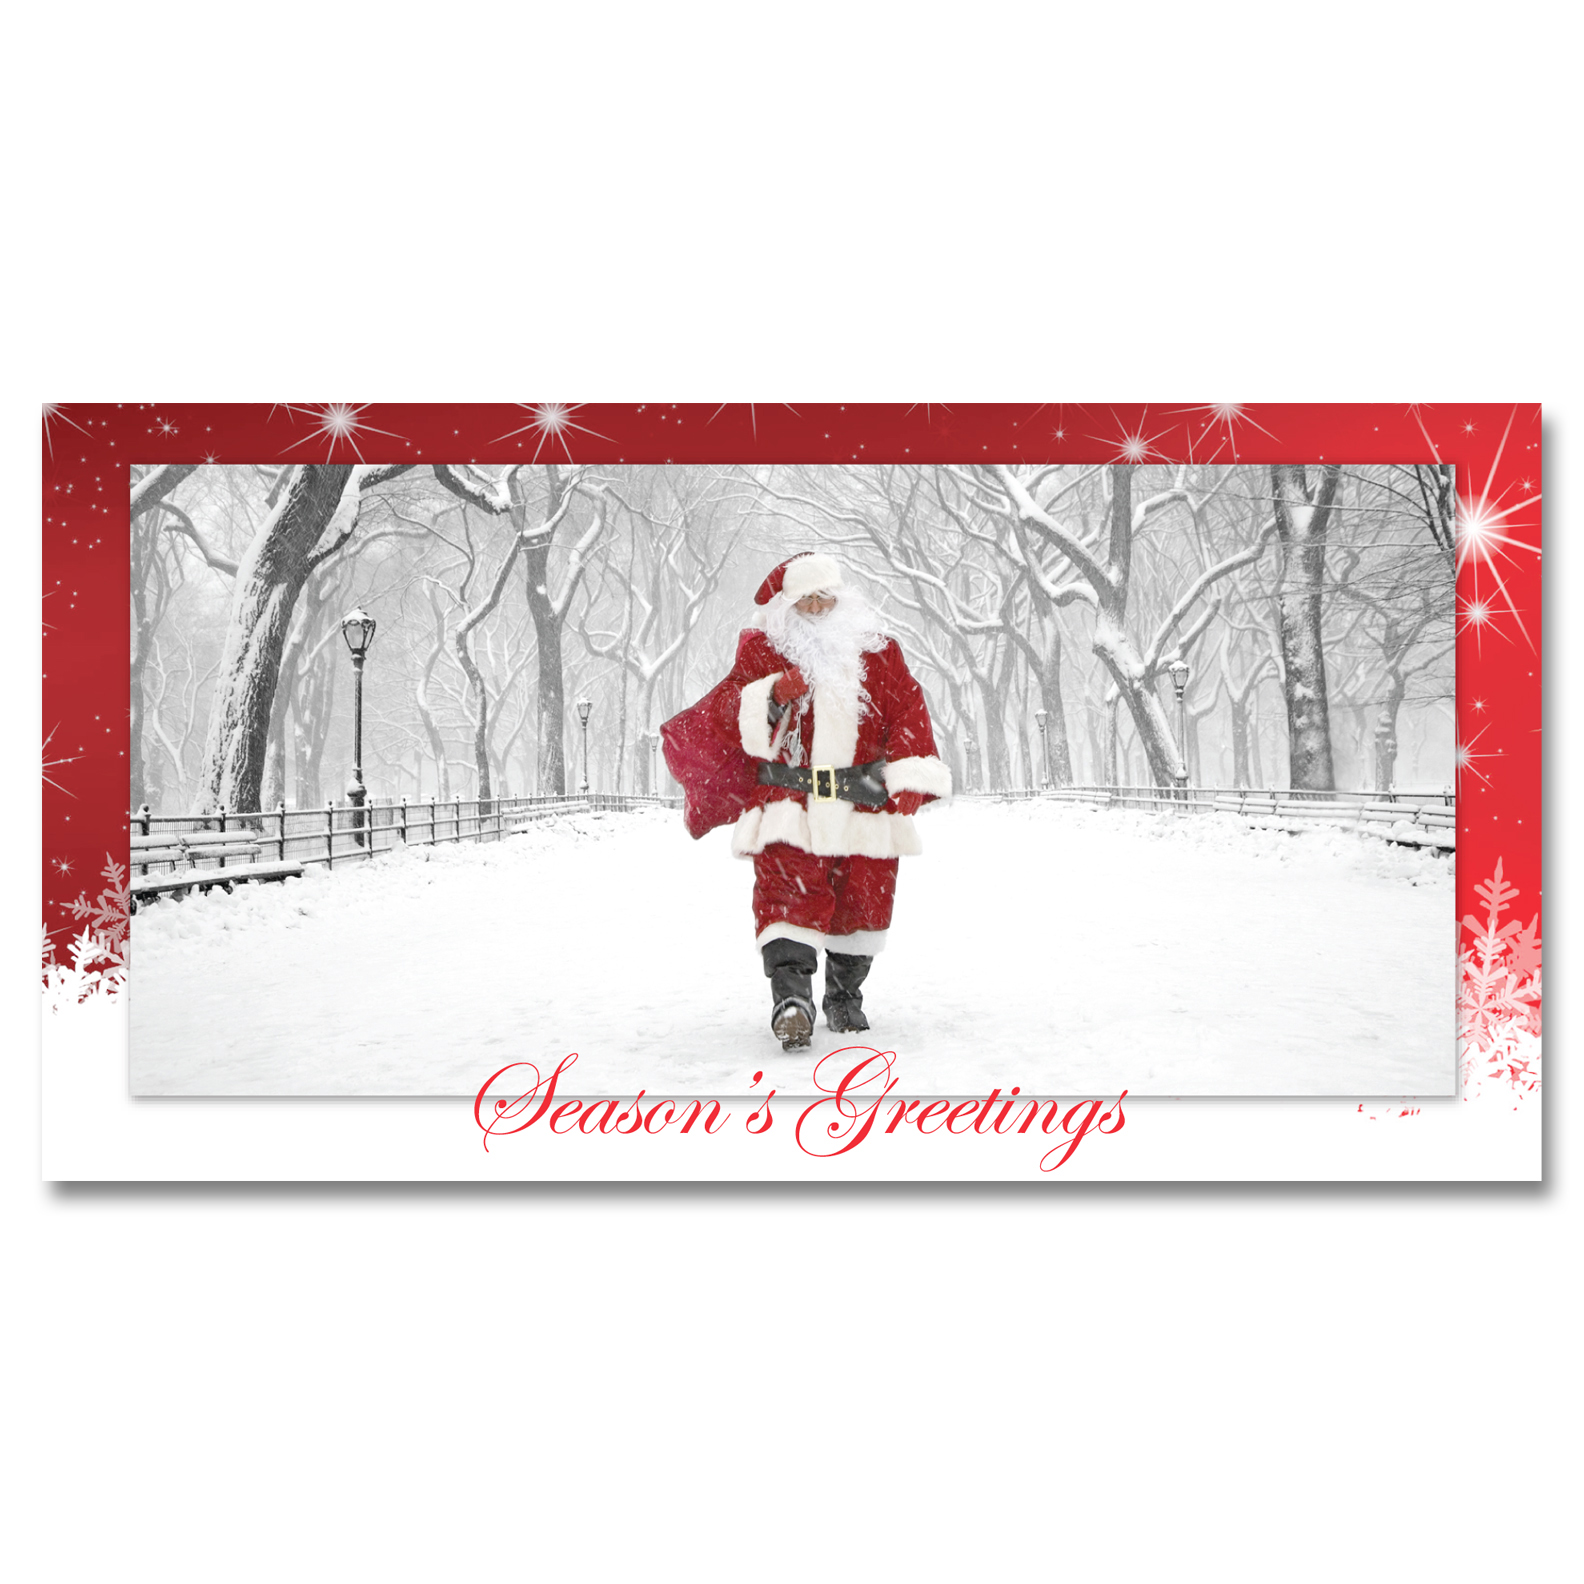 Ny christmas money cards holders santa walking on poet for Gifts for new yorkers